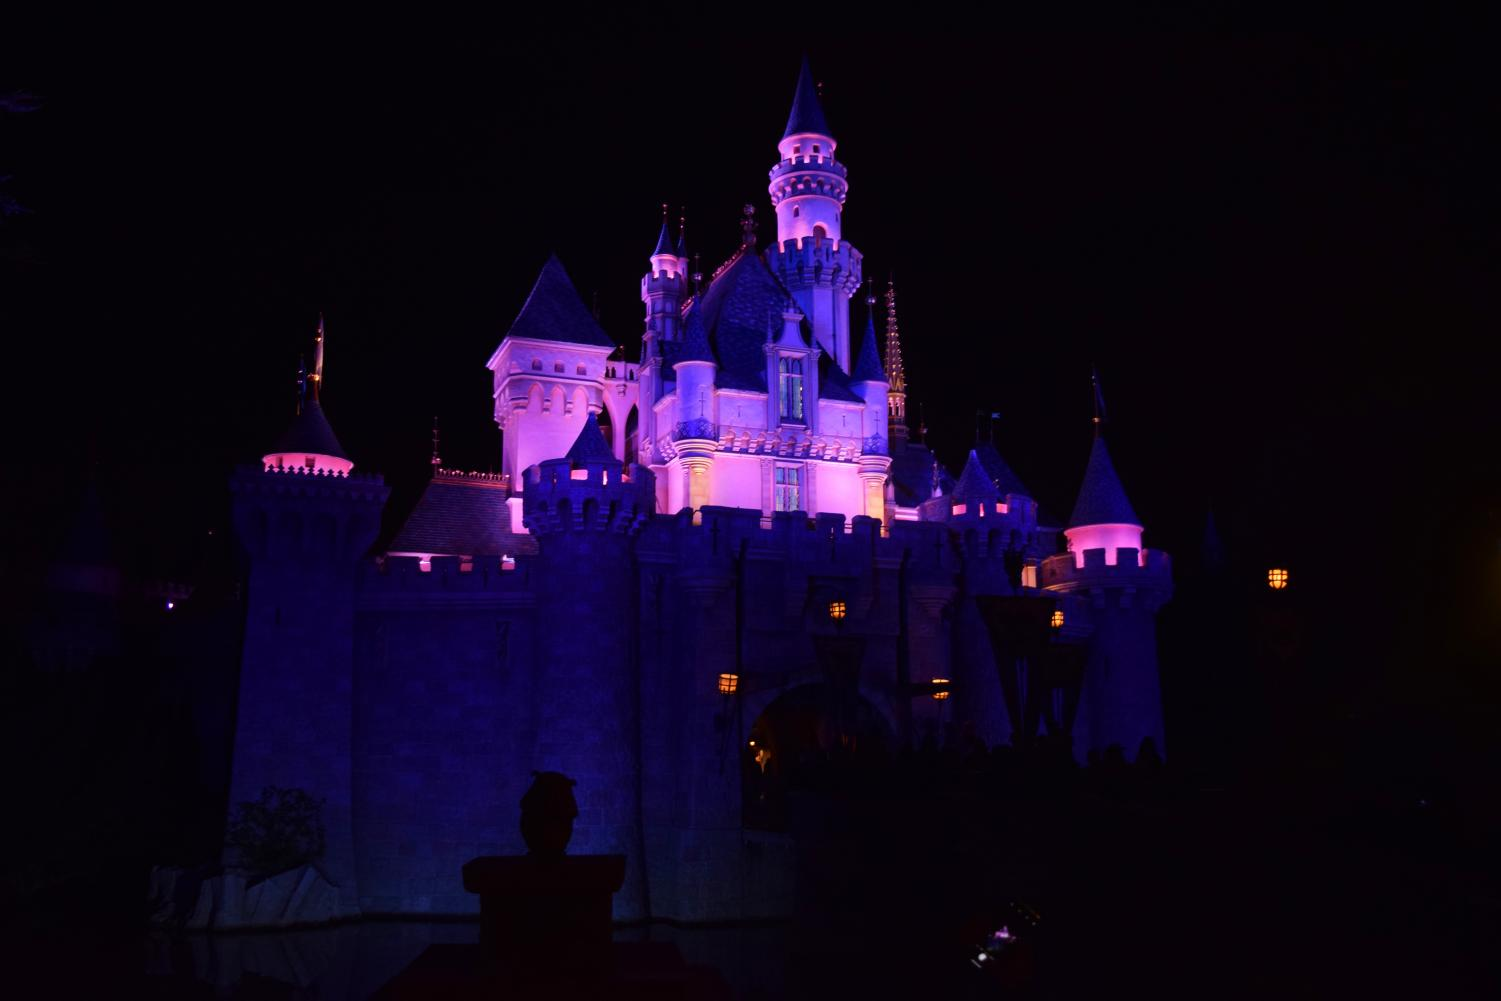 Sleeping Beauty's castle lights up the night during Clark's first Disney trip.